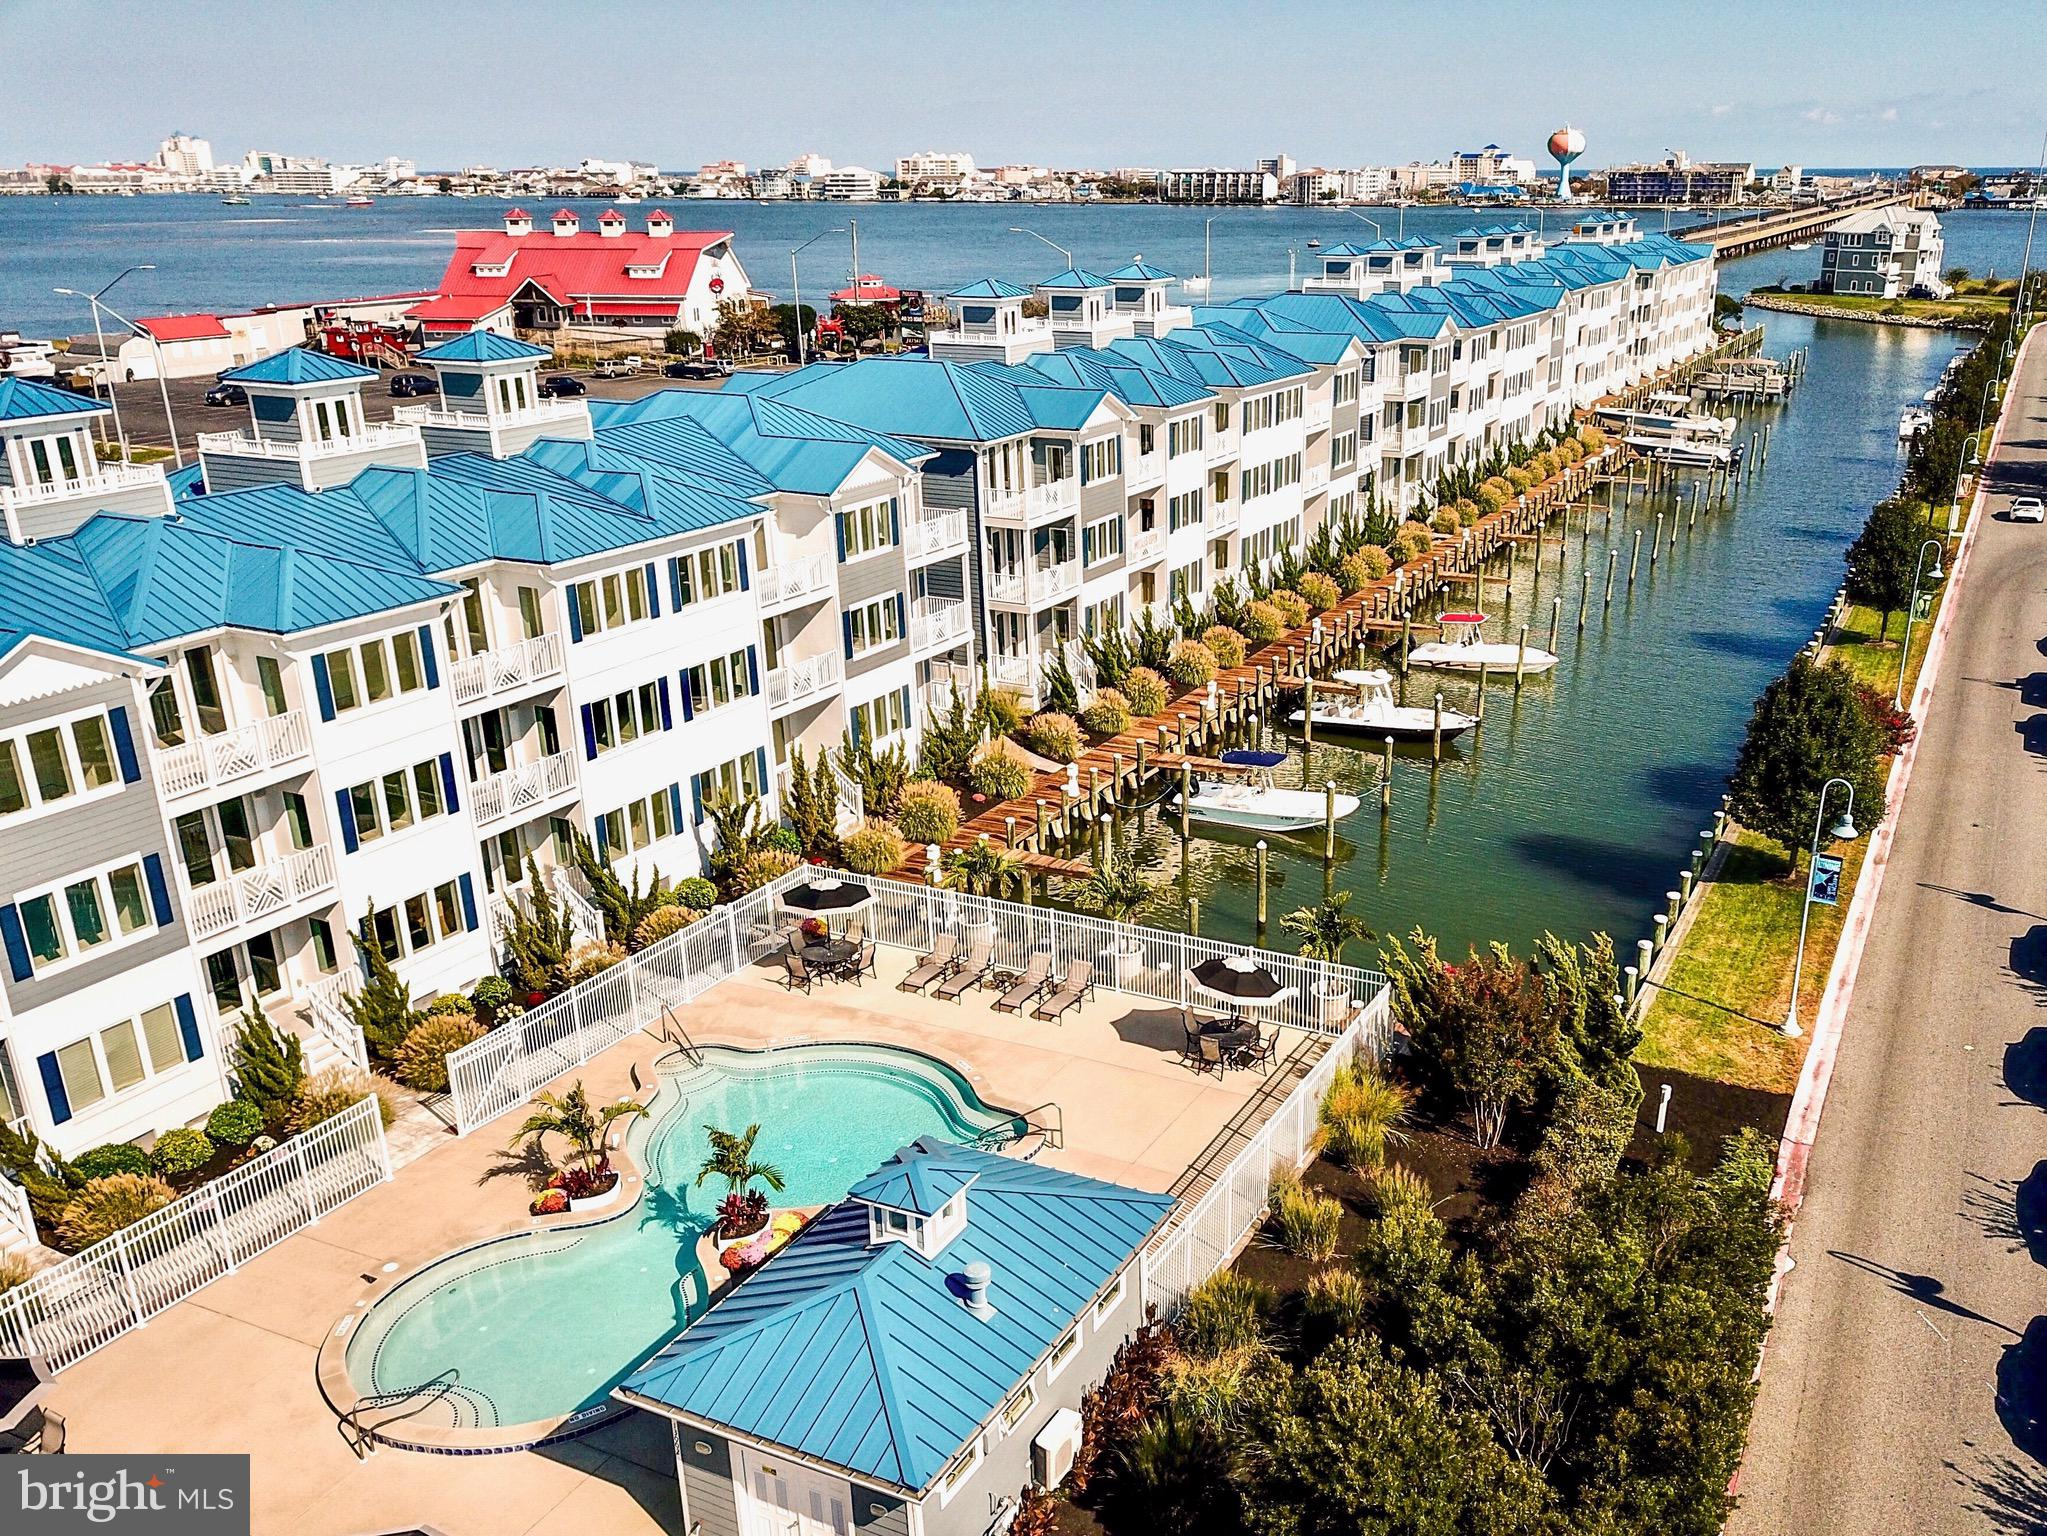 NEW MODEL - JUST RELEASED!!! If you've been looking for a property that will exceed your exceptions in the much sought after location of West Ocean City, look no more!!!!  When nothing but the best will do - The Villas at Inlet Isle is the place for you!!!! These solid concrete block constructed, 3,000 plus sq. ft. luxury townhomes offer 3 and 4 bedroom units with impeccable attention to detail and quality finishings throughout.  Unit 9  offers 3 spacious bedrooms with additional space that can be used as a 4th bedroom or second master suite and conveys with a wide 30 ft. boat slip, all slips have access to water and electric. Every unit has 4 full bathrooms, custom walk-in showers, a private elevator, two car garage, soaring 9 ft. ceilings and crown molding throughout, plenty of tall windows and doors to allow an abundance of natural daylight inside, outdoor living space on every level. Unit 9 has an absolutely stunning custom gourmet kitchen with beautiful calacatta quartz countertops, a very large kitchen island that seats 4 comfortably, upgraded stainless steel appliances, separate dining area and spacious living areas. Extremely spacious master ensuite with sitting area, his and hers walk-in closets, double bathroom vanities, double custom walk-in shower, private balcony overlooking the marina and views of the OC Inlet. Incredible OC skyline, marina, and open bay views from almost every room.  Community dock, southern exposed heated community pool w/bathhouse & outdoor shower. 30 and 38 ft. boat slips available.  Stop in the sales office Thursday-Monday 11-4 or schedule a private showing. Property taxes shown in this listing are estimated.